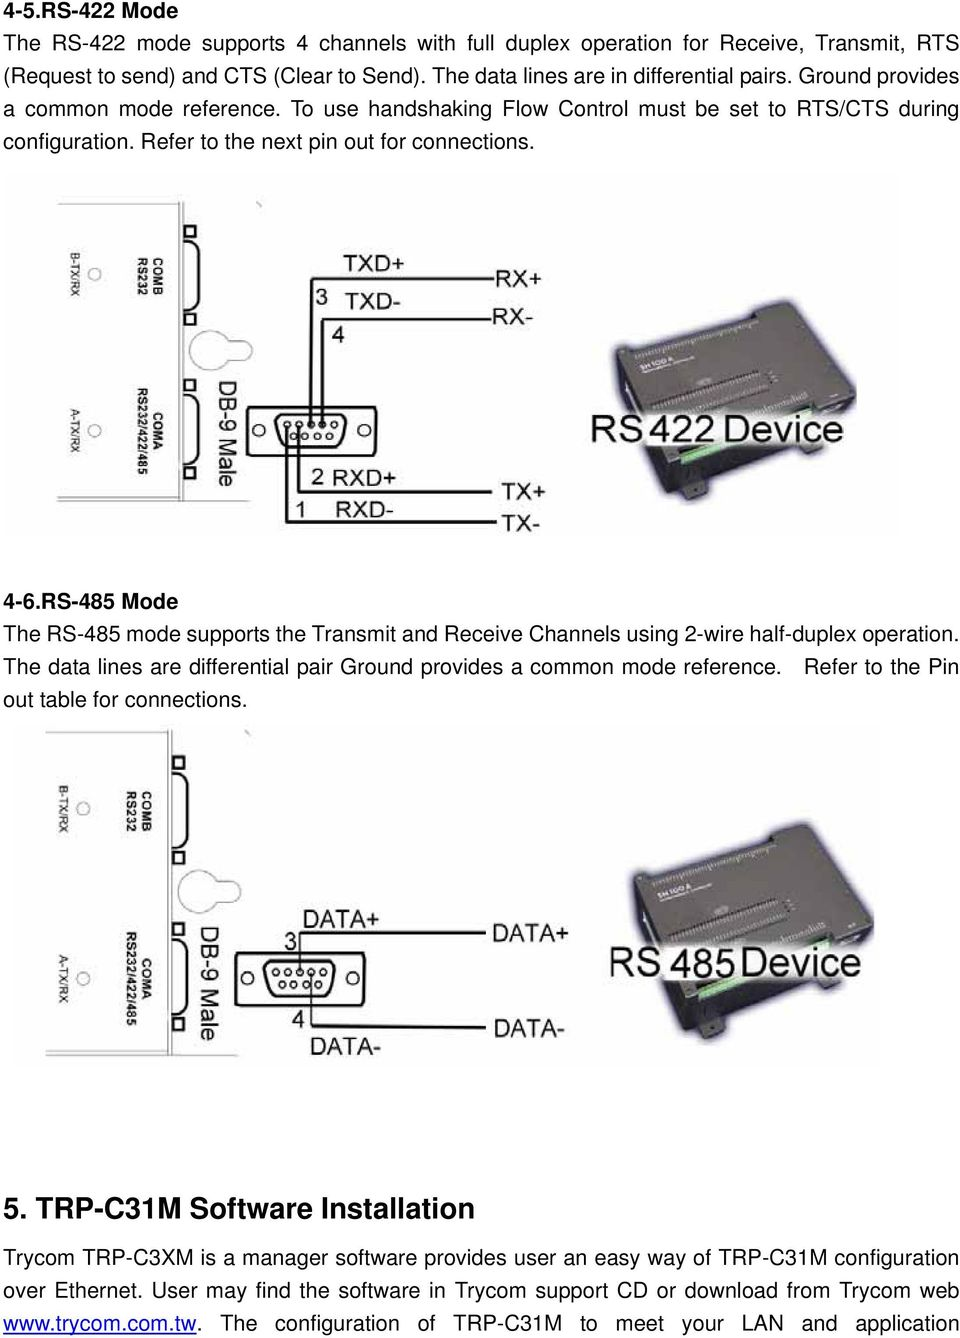 RS-485 Mode The RS-485 mode supports the Transmit and Receive Channels using 2-wire half-duplex operation. The data lines are differential pair Ground provides a common mode reference.